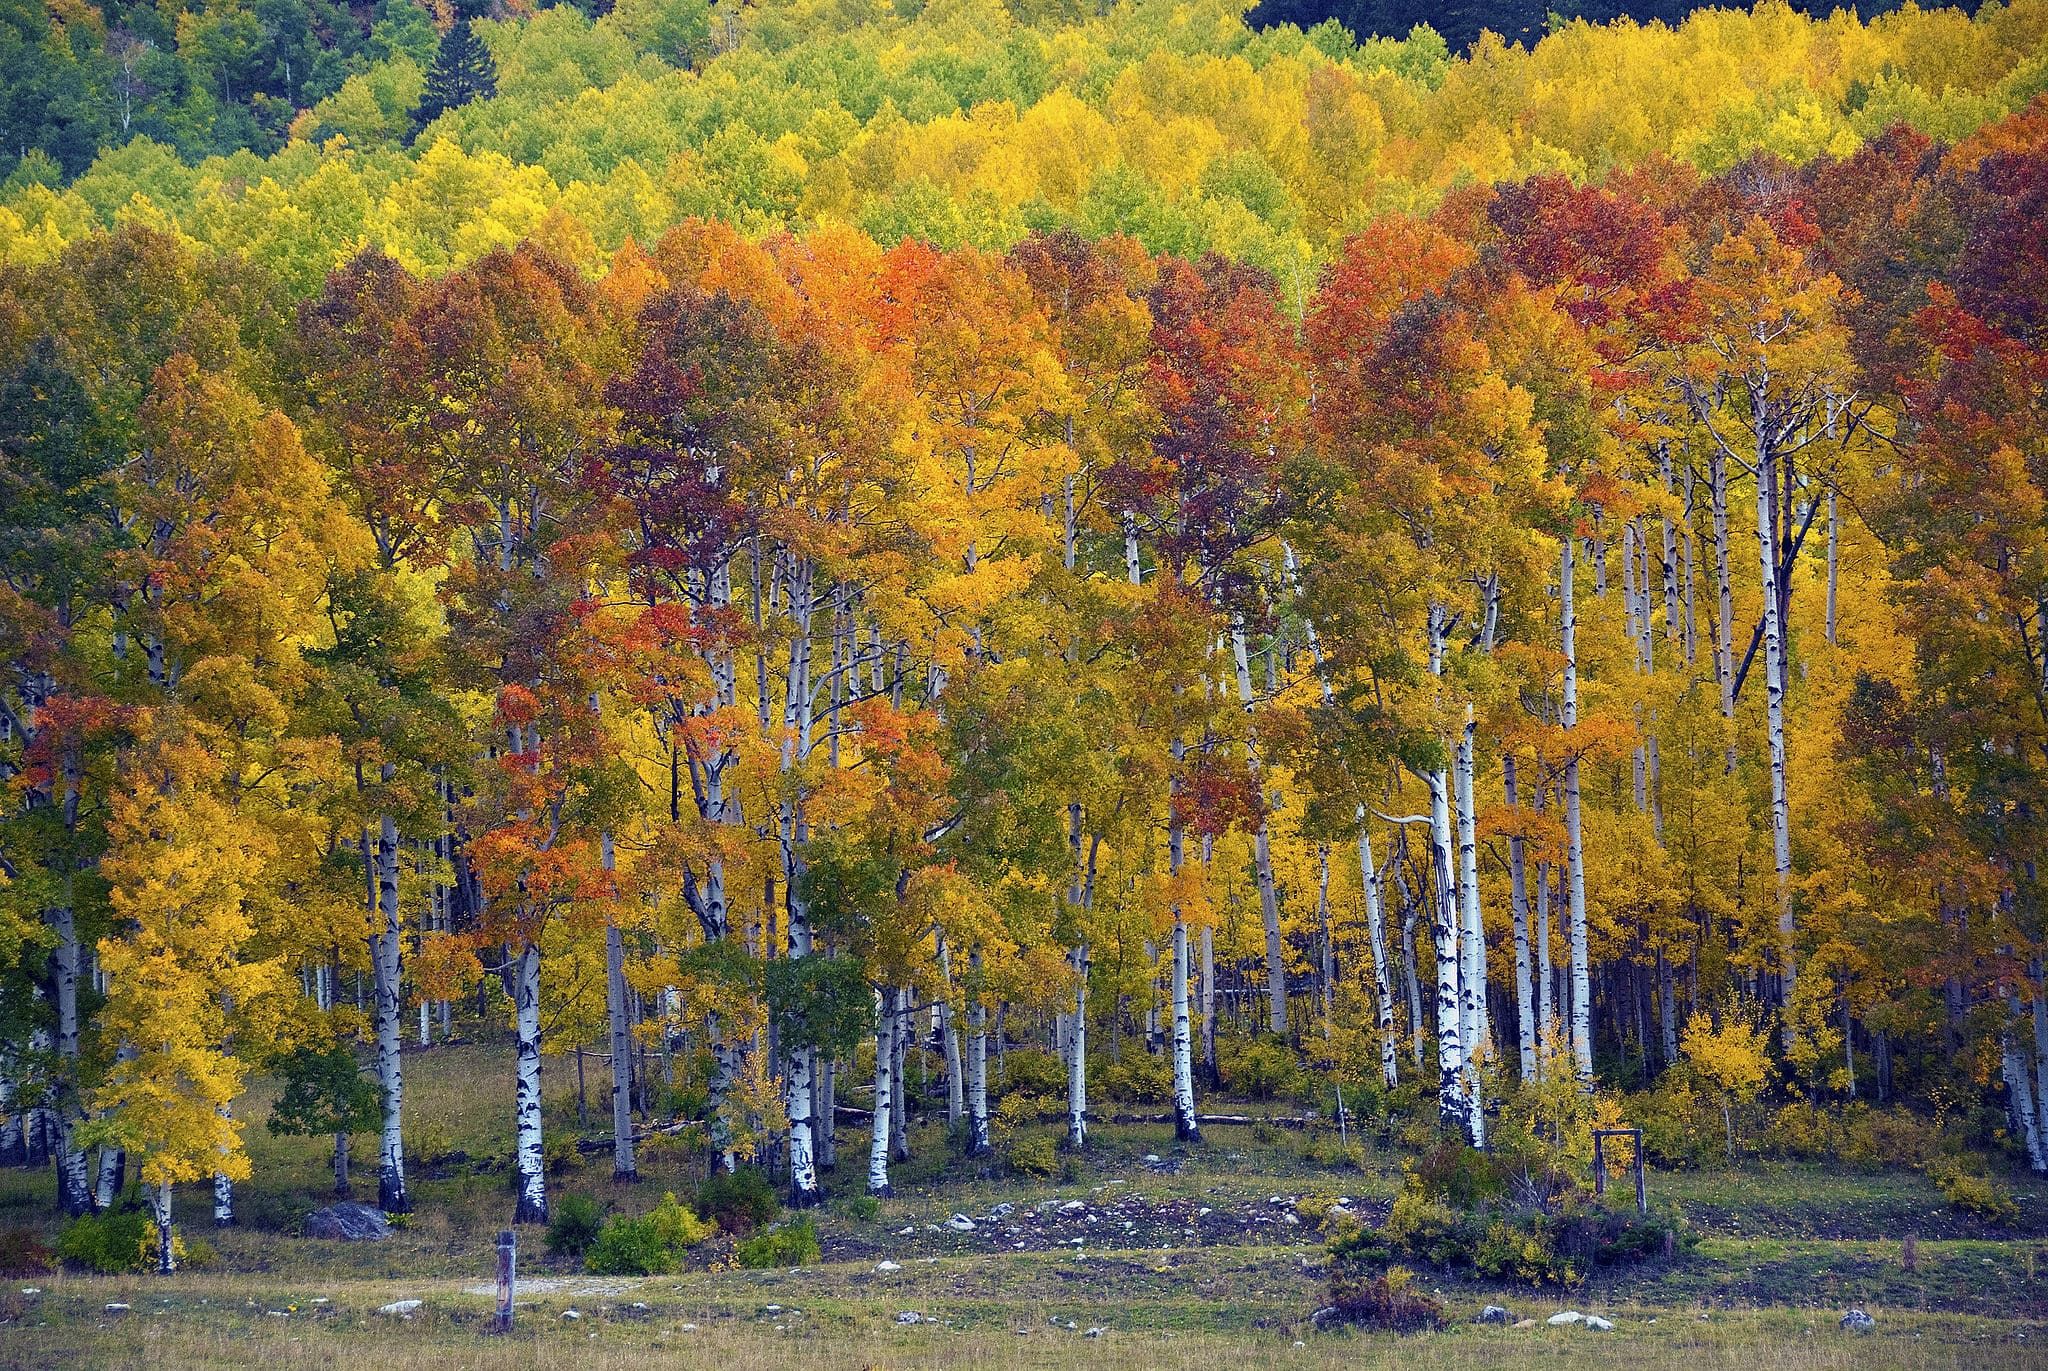 Fall in Durango - Experience the best fall colors in Colorado with this detailed road trip itinerary